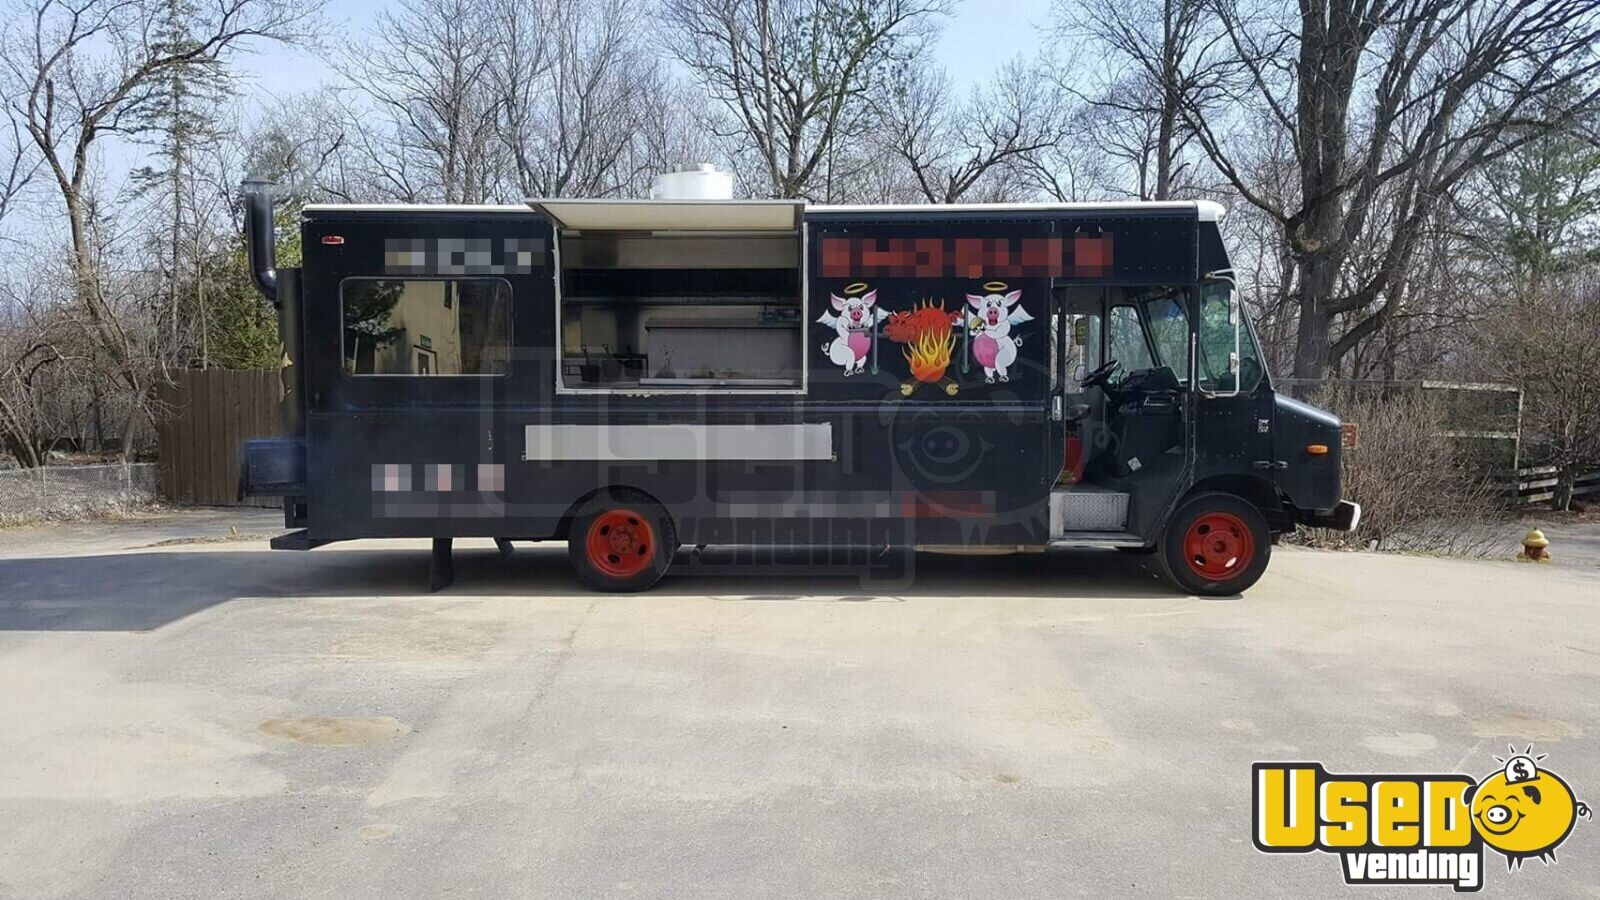 2005 Workhorse Custom Chassis Barbecue Food Truck Concession Window New York Diesel Engine for Sale - 2